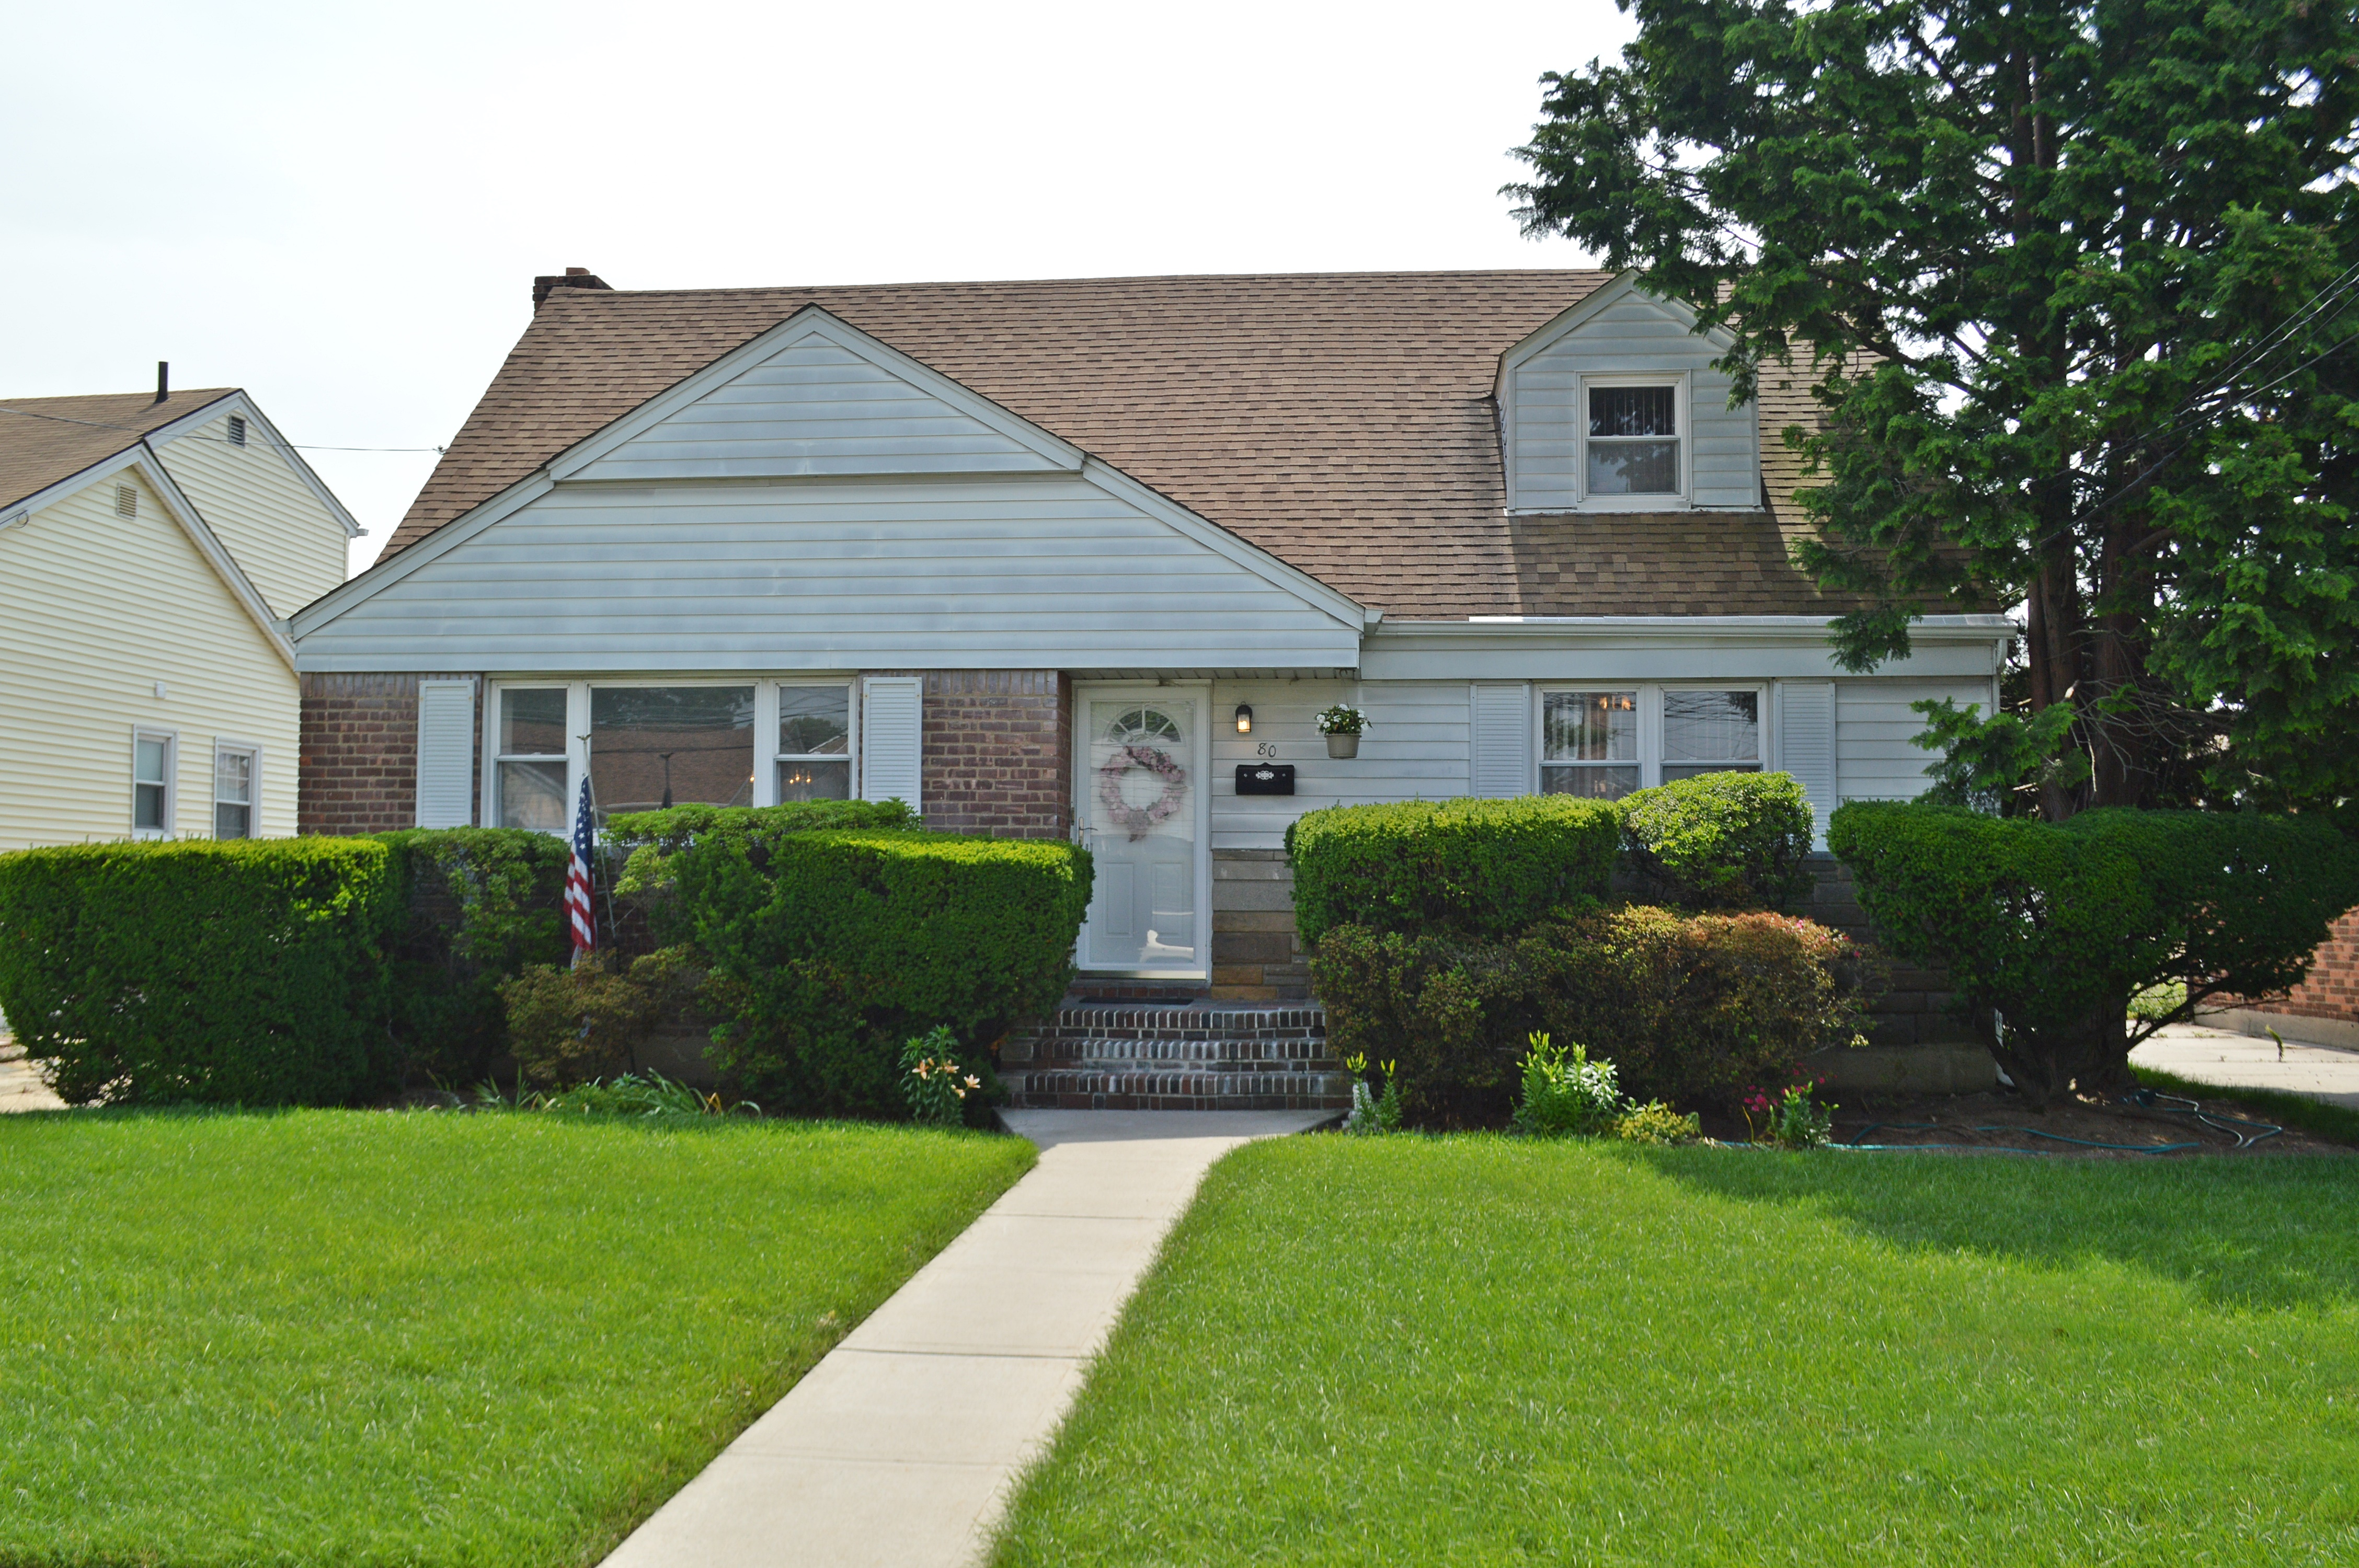 Single Family Home for Sale at Cape 80 Countisbury Ave Valley Stream, New York 11580 United States